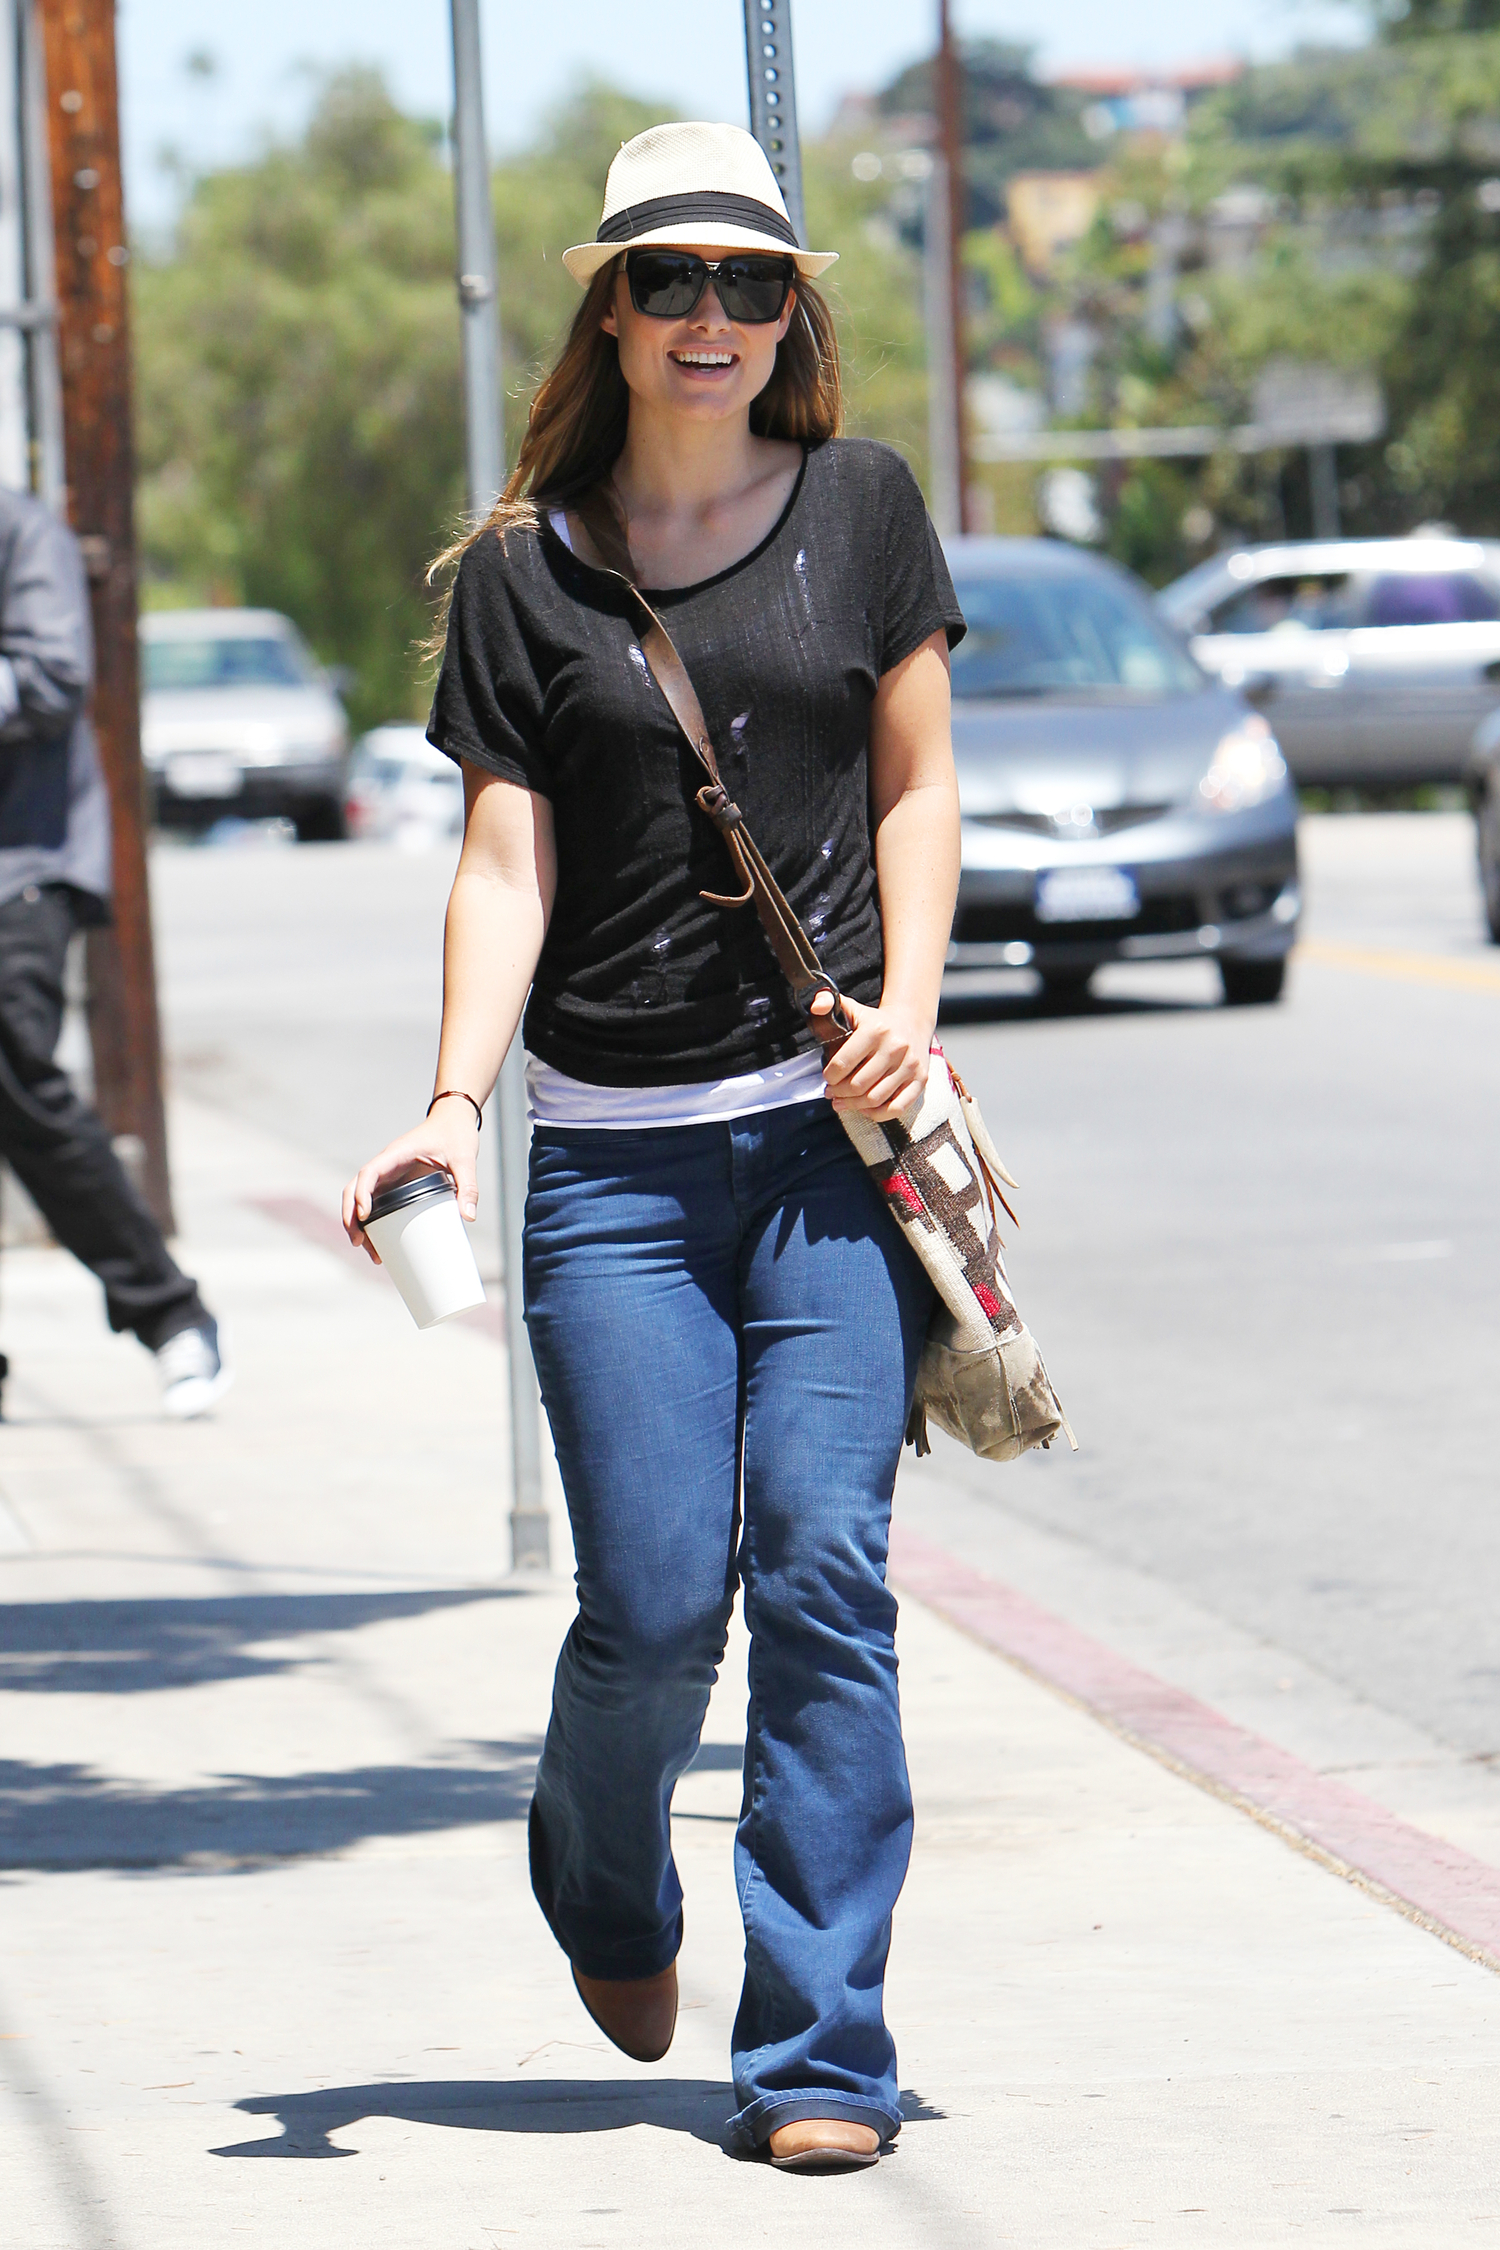 Olivia wilde wearing tight jeans in los angeles 06 gotceleb olivia wilde wearing tight jeans in los angeles 06 full size voltagebd Image collections